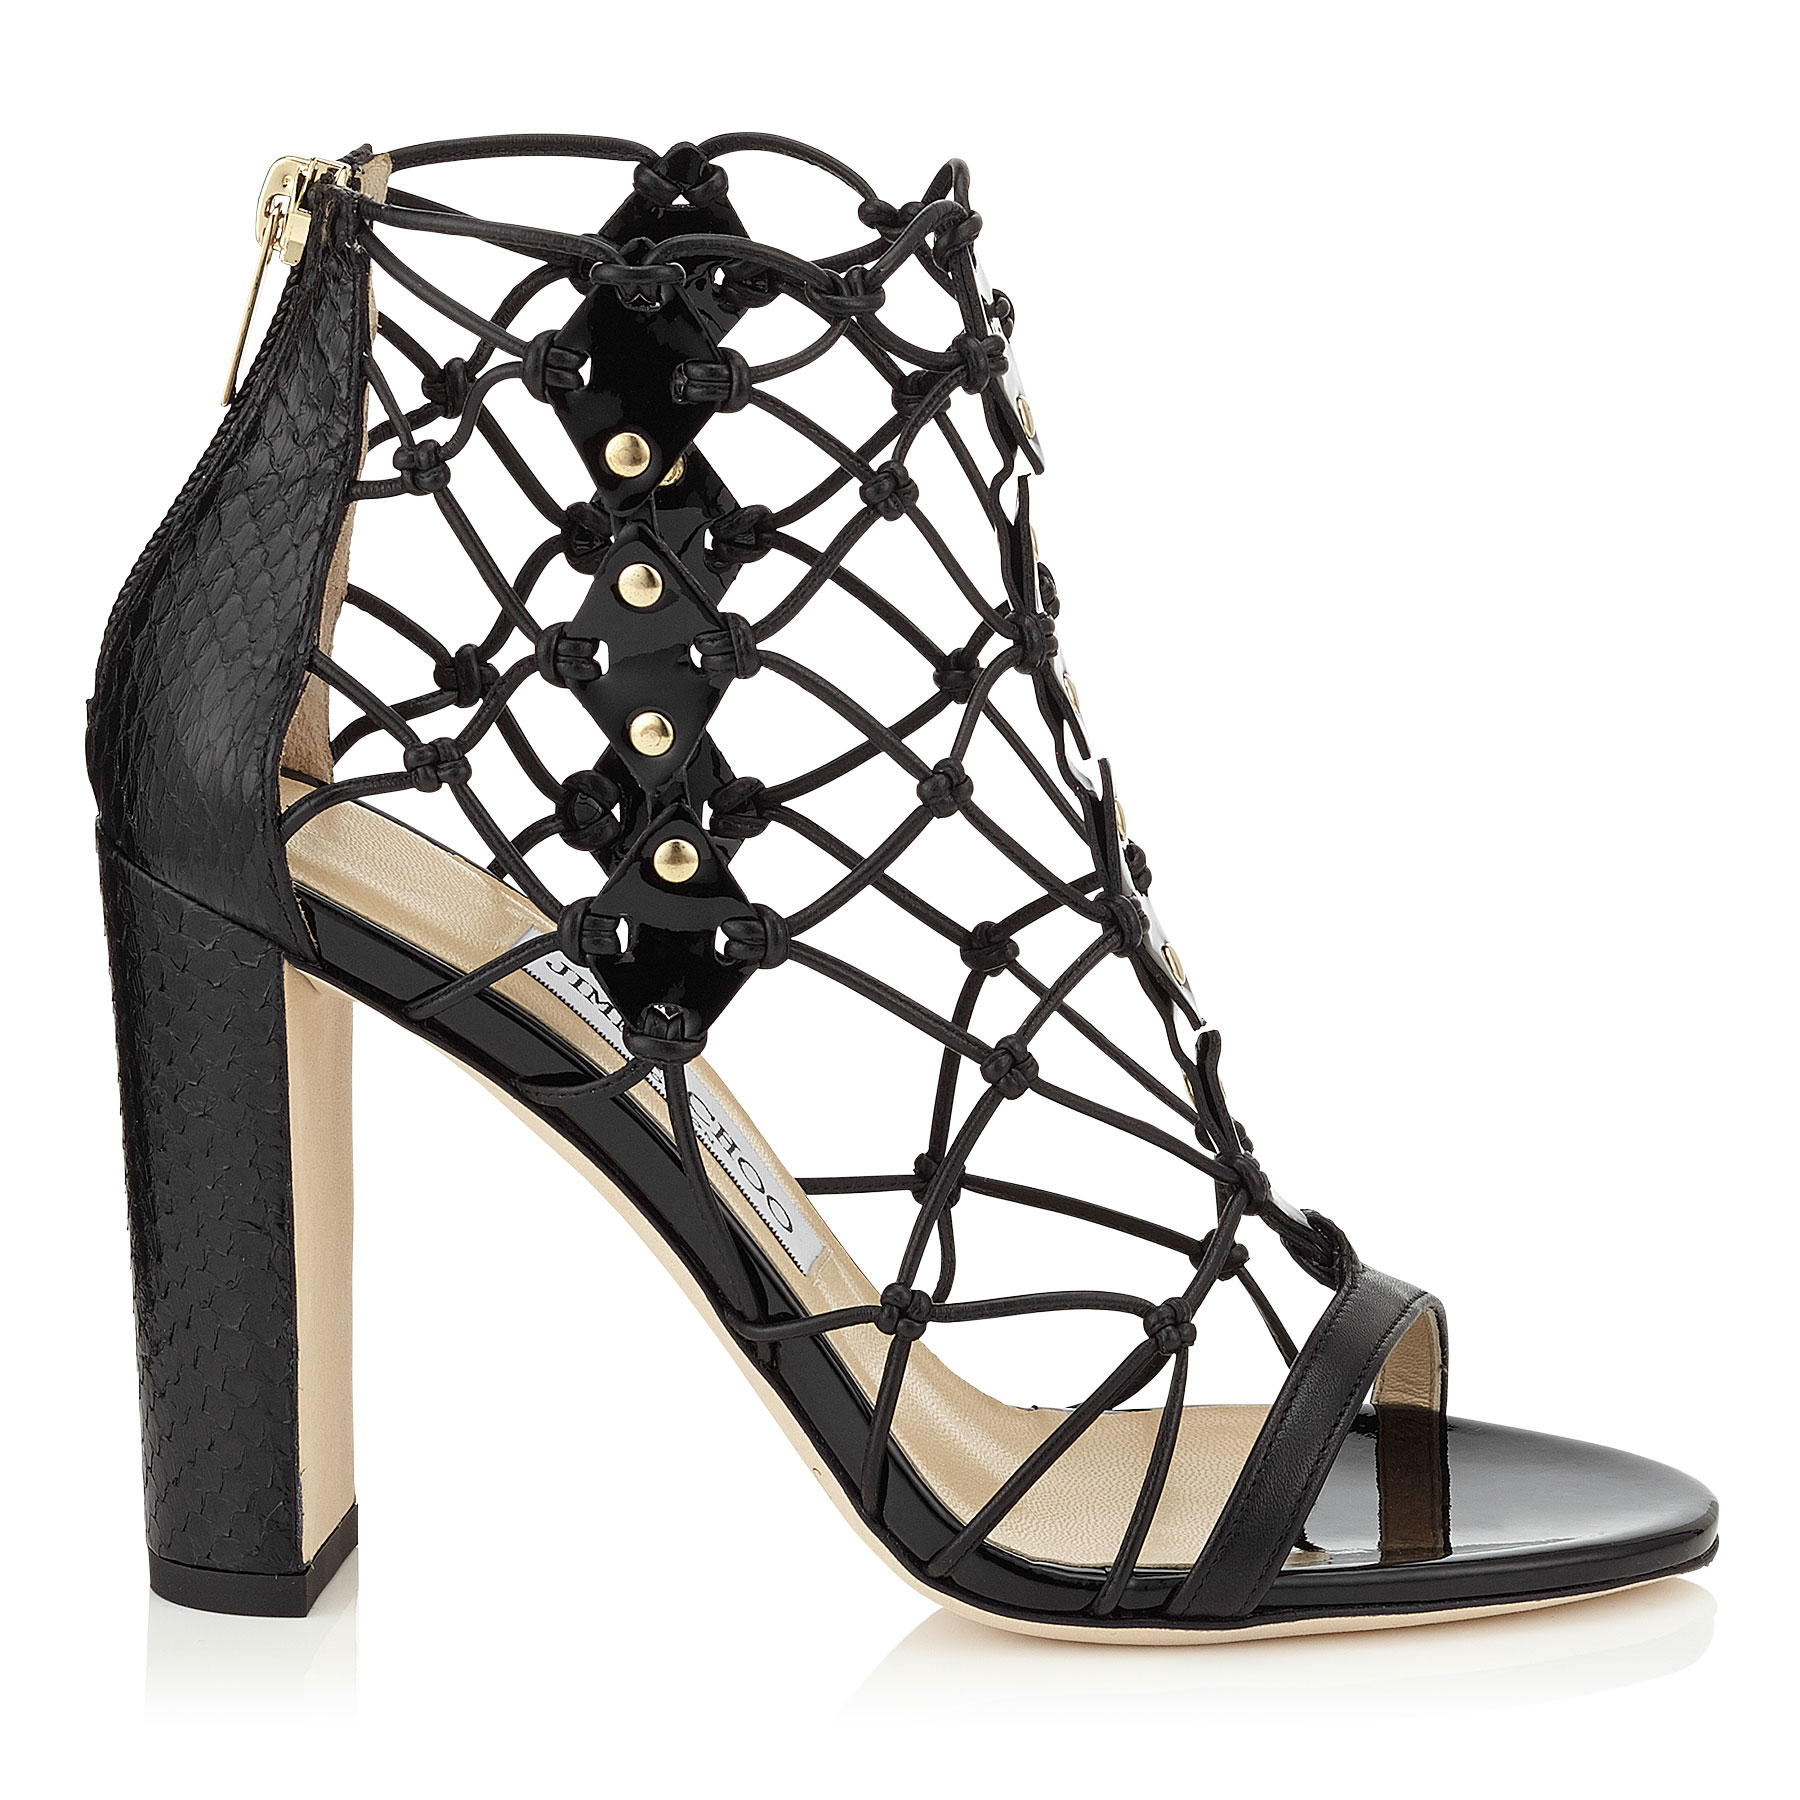 TICKLE 100 Black Nappa, Patent Leather and Elaphe Caged Sandals